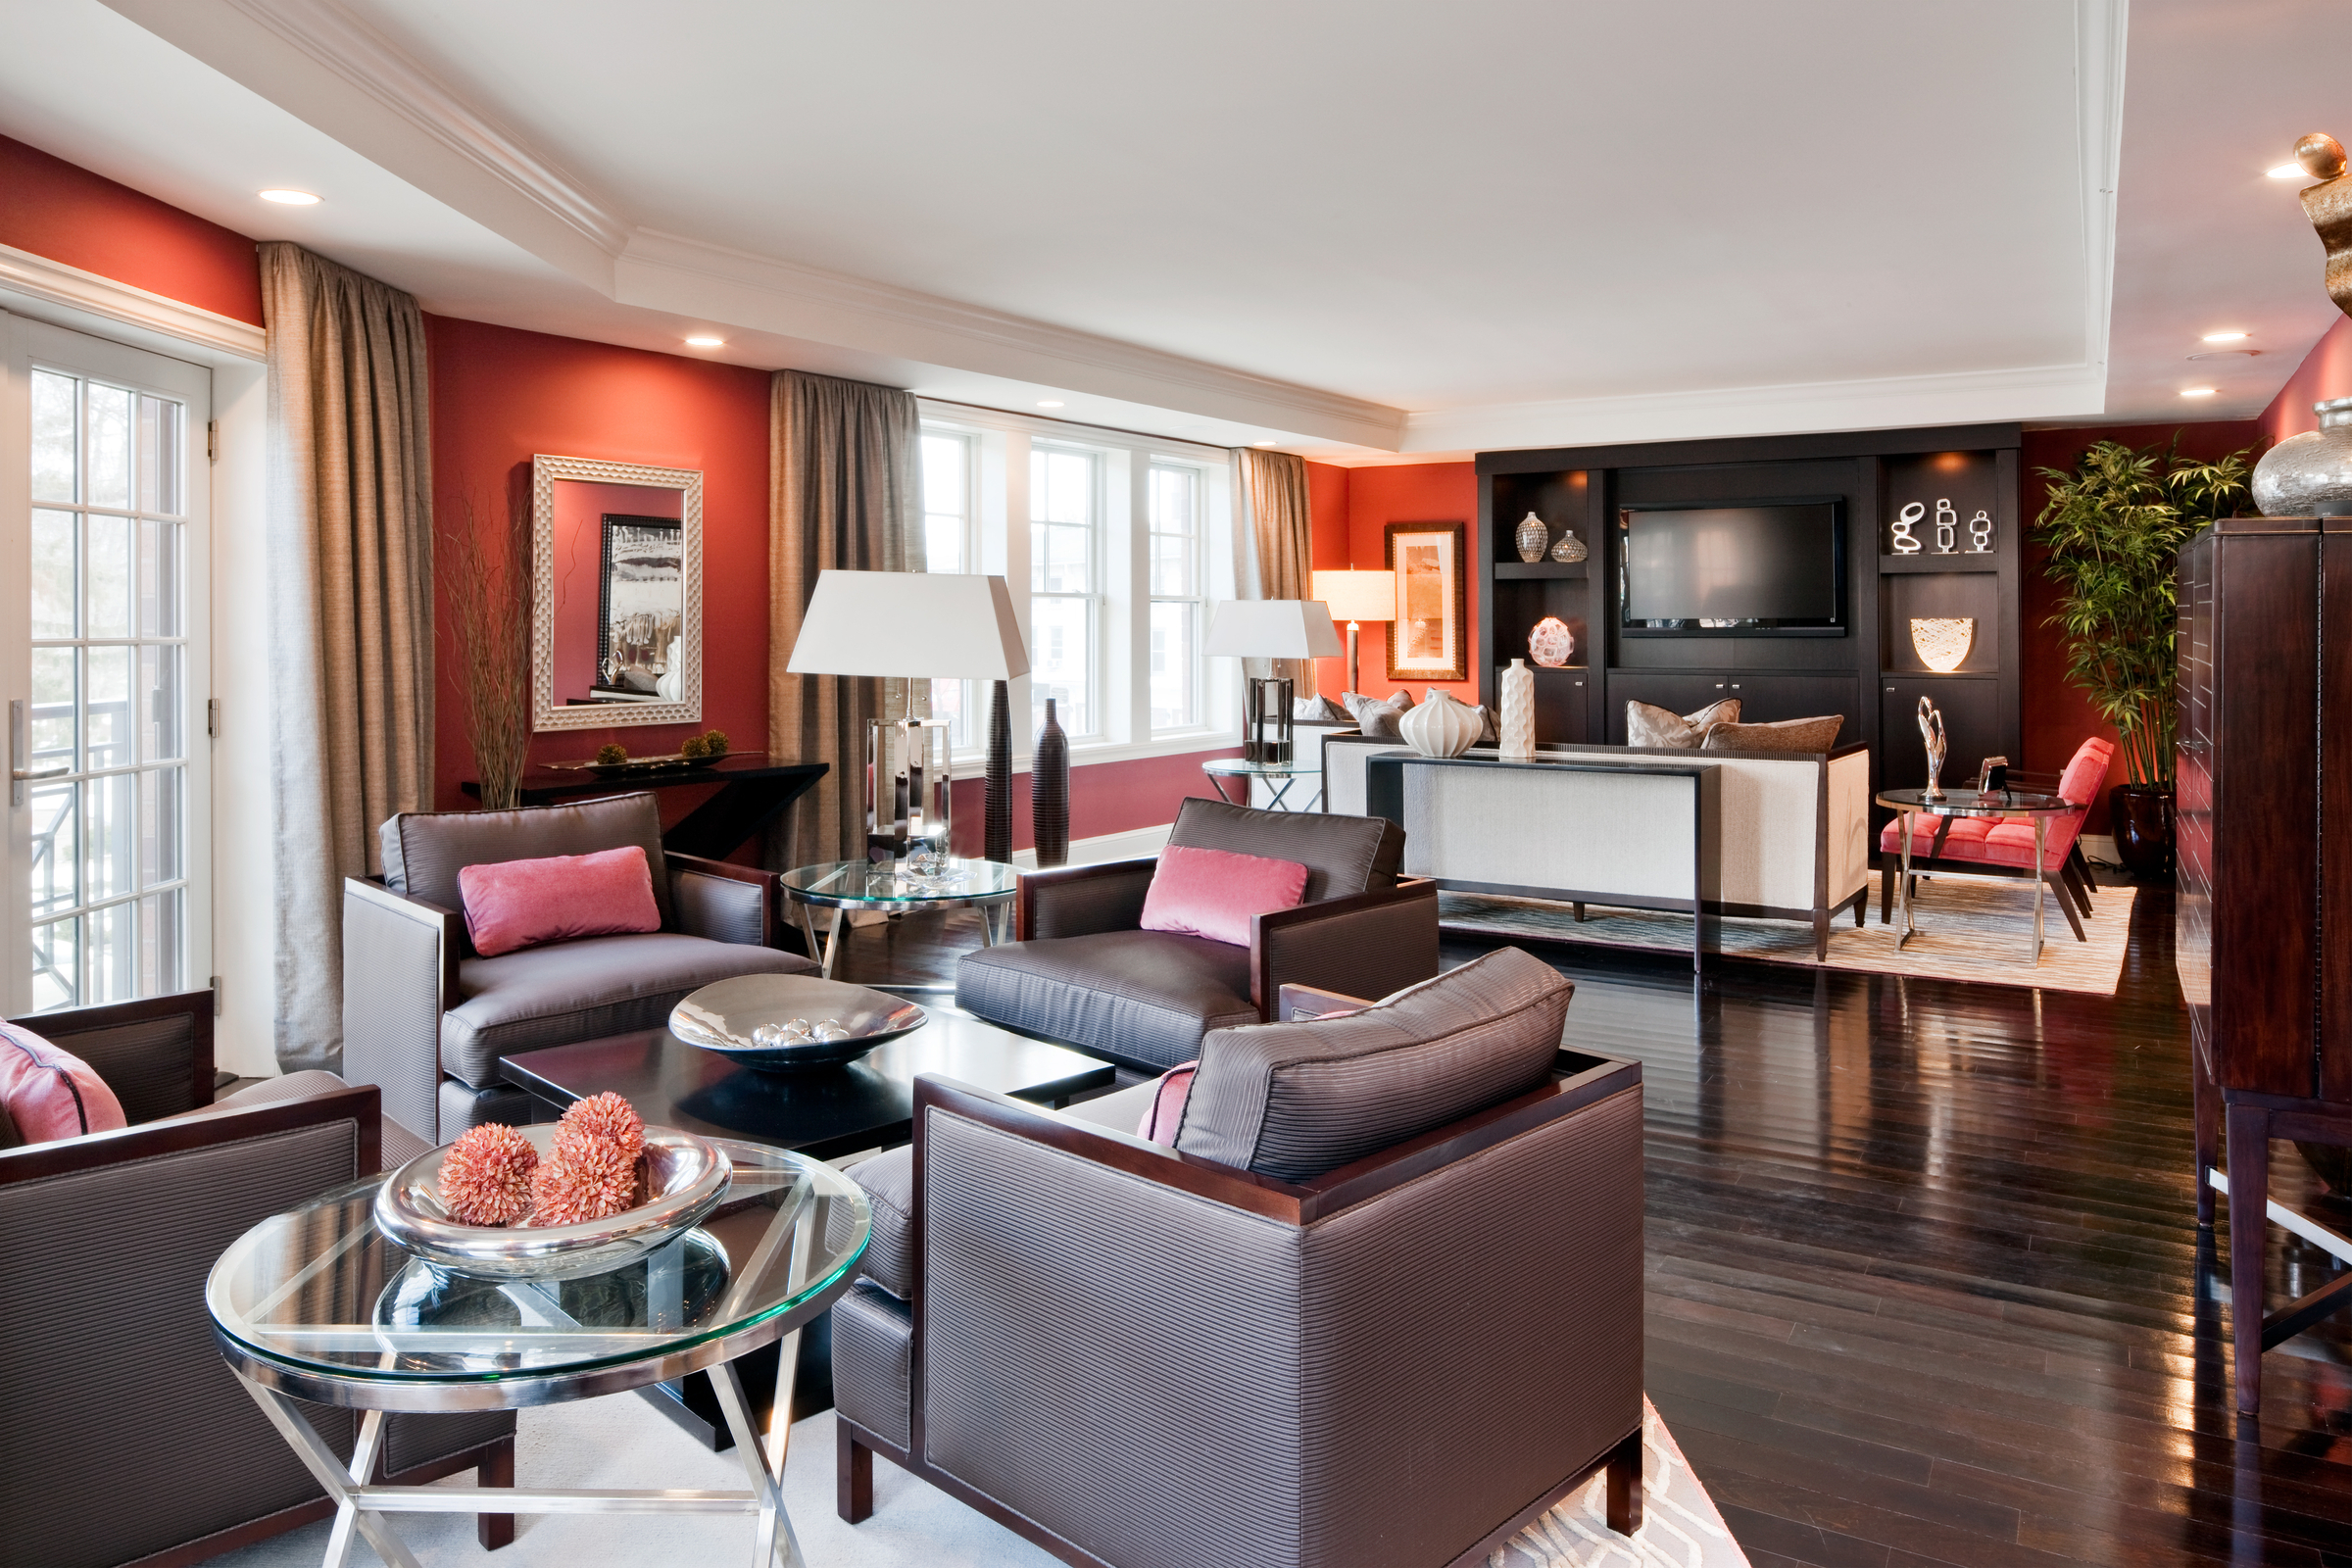 A Look At The Model Homes At 40 Park Live Morristown